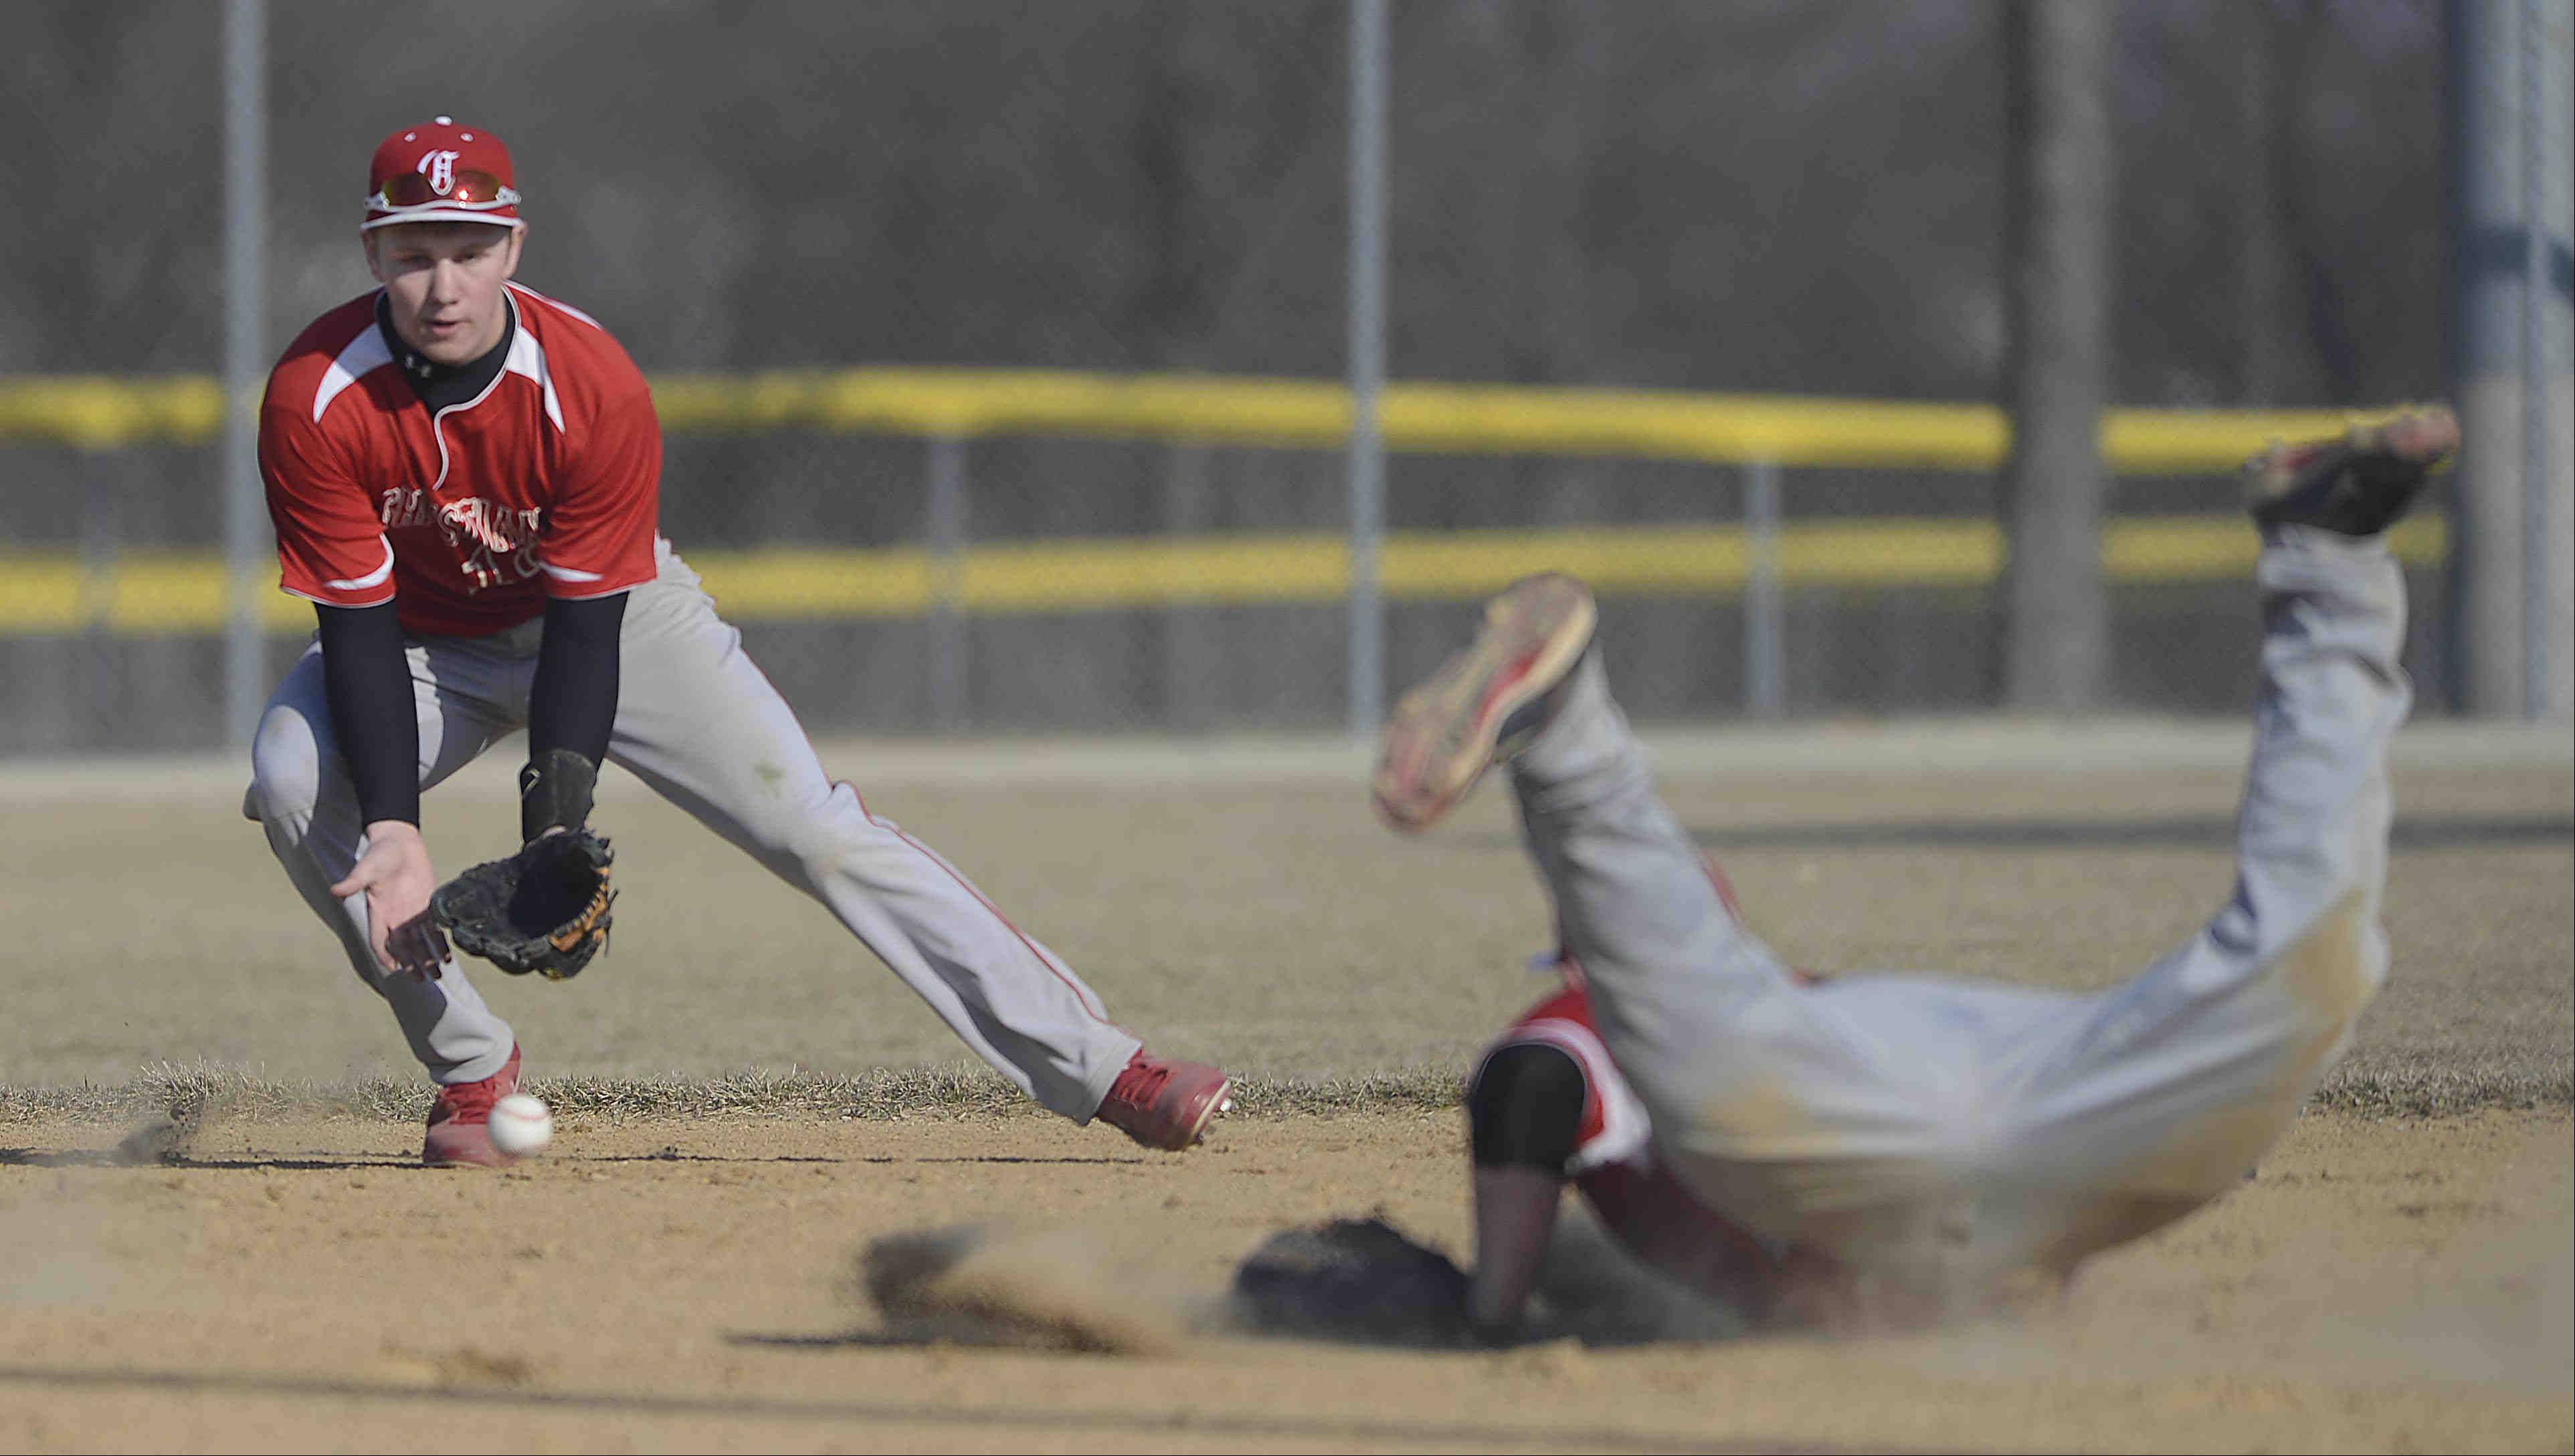 Aurora Christian first baseman Tristin Withrow falls face first into the dust as second baseman R.D. Lutze makes the play on a ground ball hit by St. Edward's Antonio Domel Thursday in Elgin. Lutze threw out Domel to end the first inning as pitcher Chase Tomney covered first.